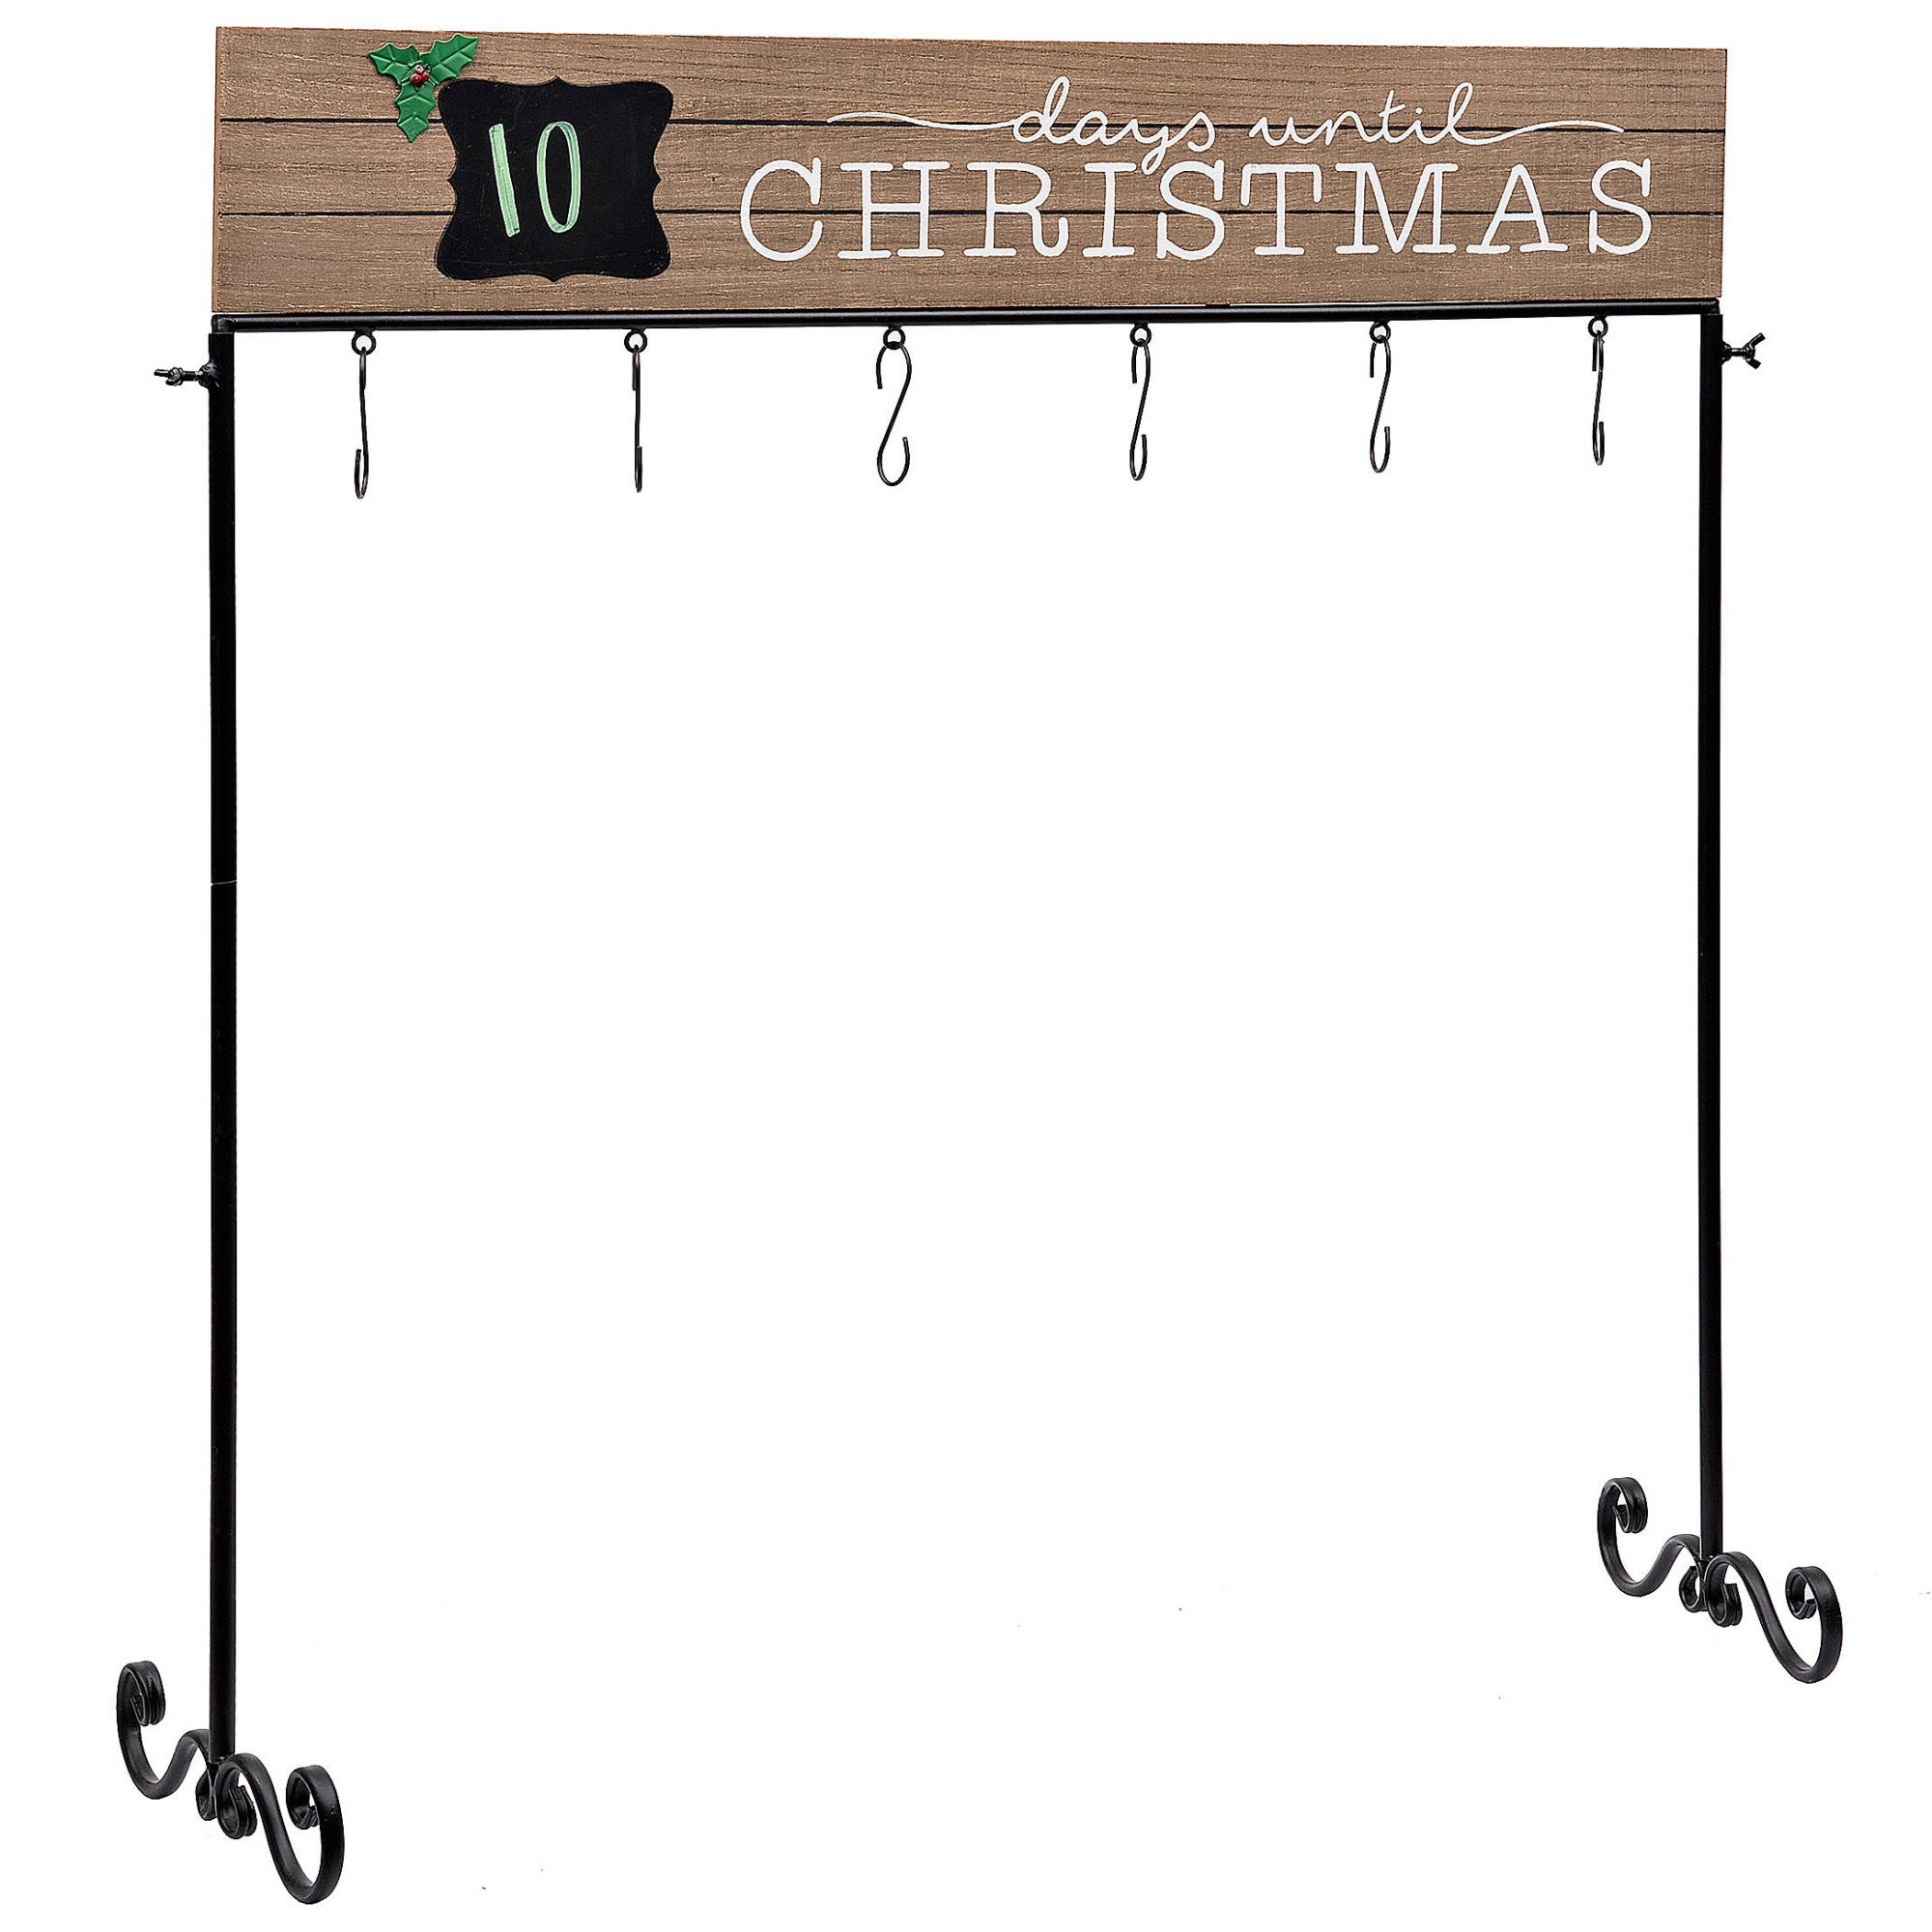 Christmas stocking holders - Kirkland's Days Until Christmas Stocking Holder